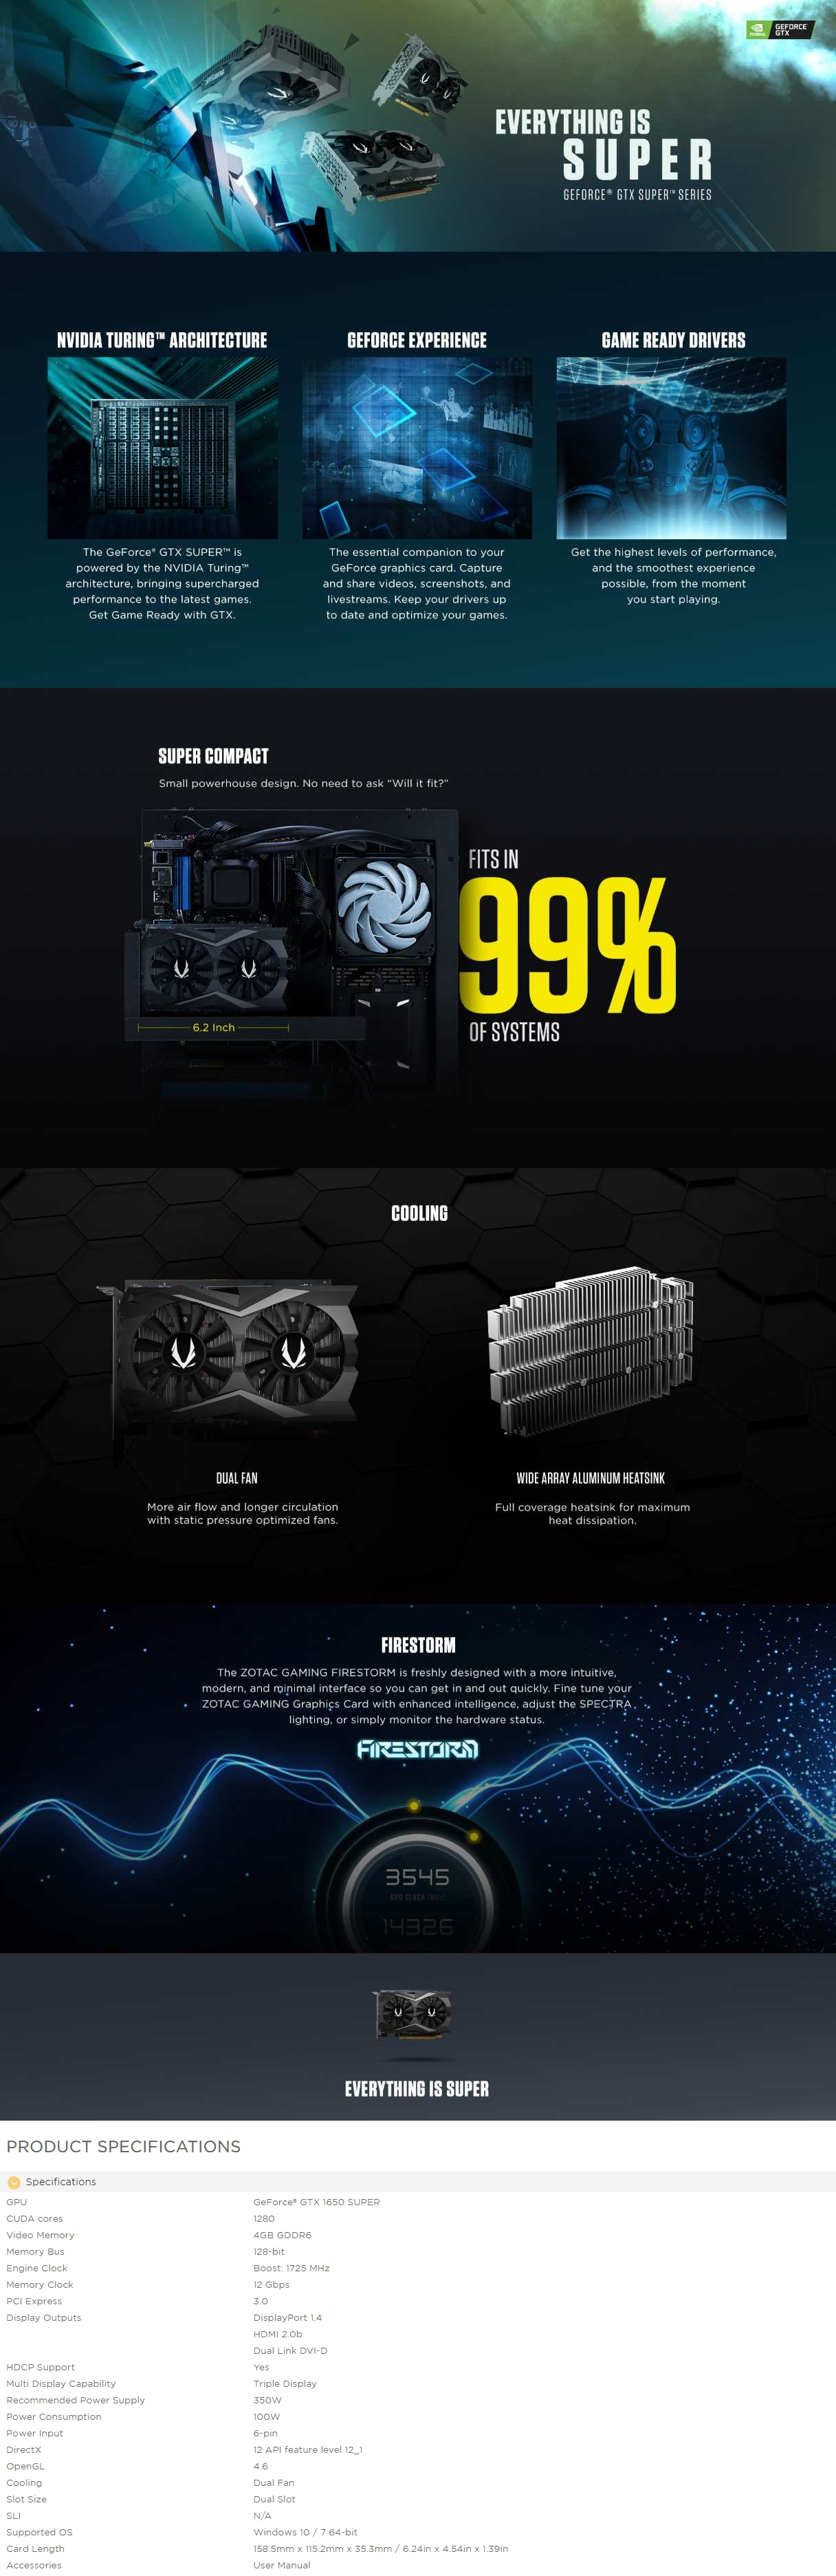 A large marketing image providing additional information about the product ZOTAC GAMING GeForce GTX1650 SUPER Twin Fan - Additional alt info not provided